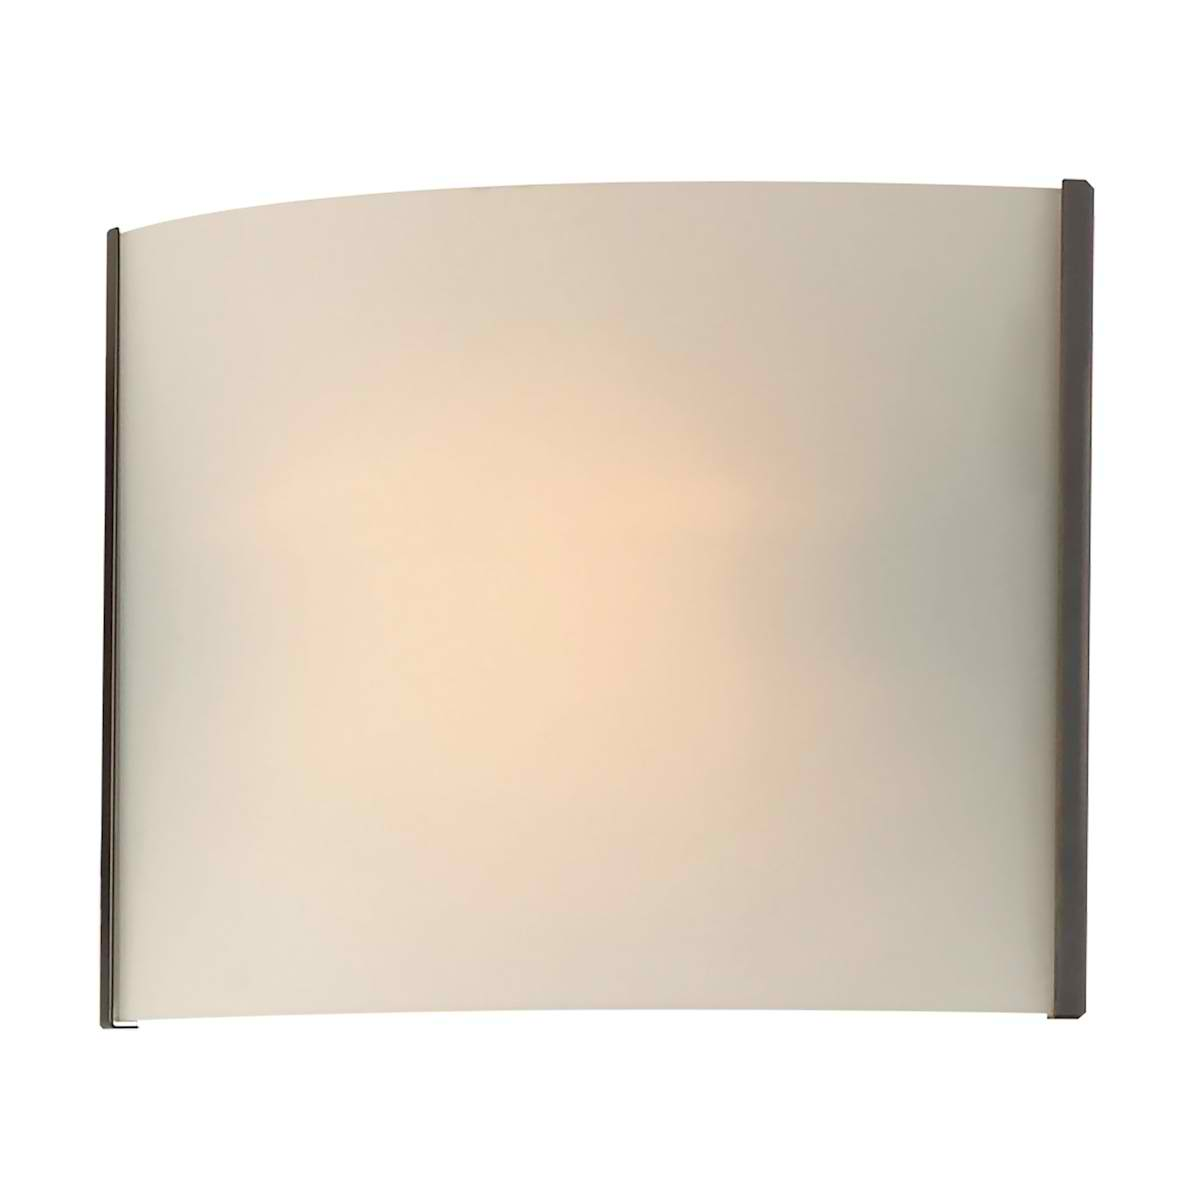 Pannelli 1 Light ORB with White Opal Glass